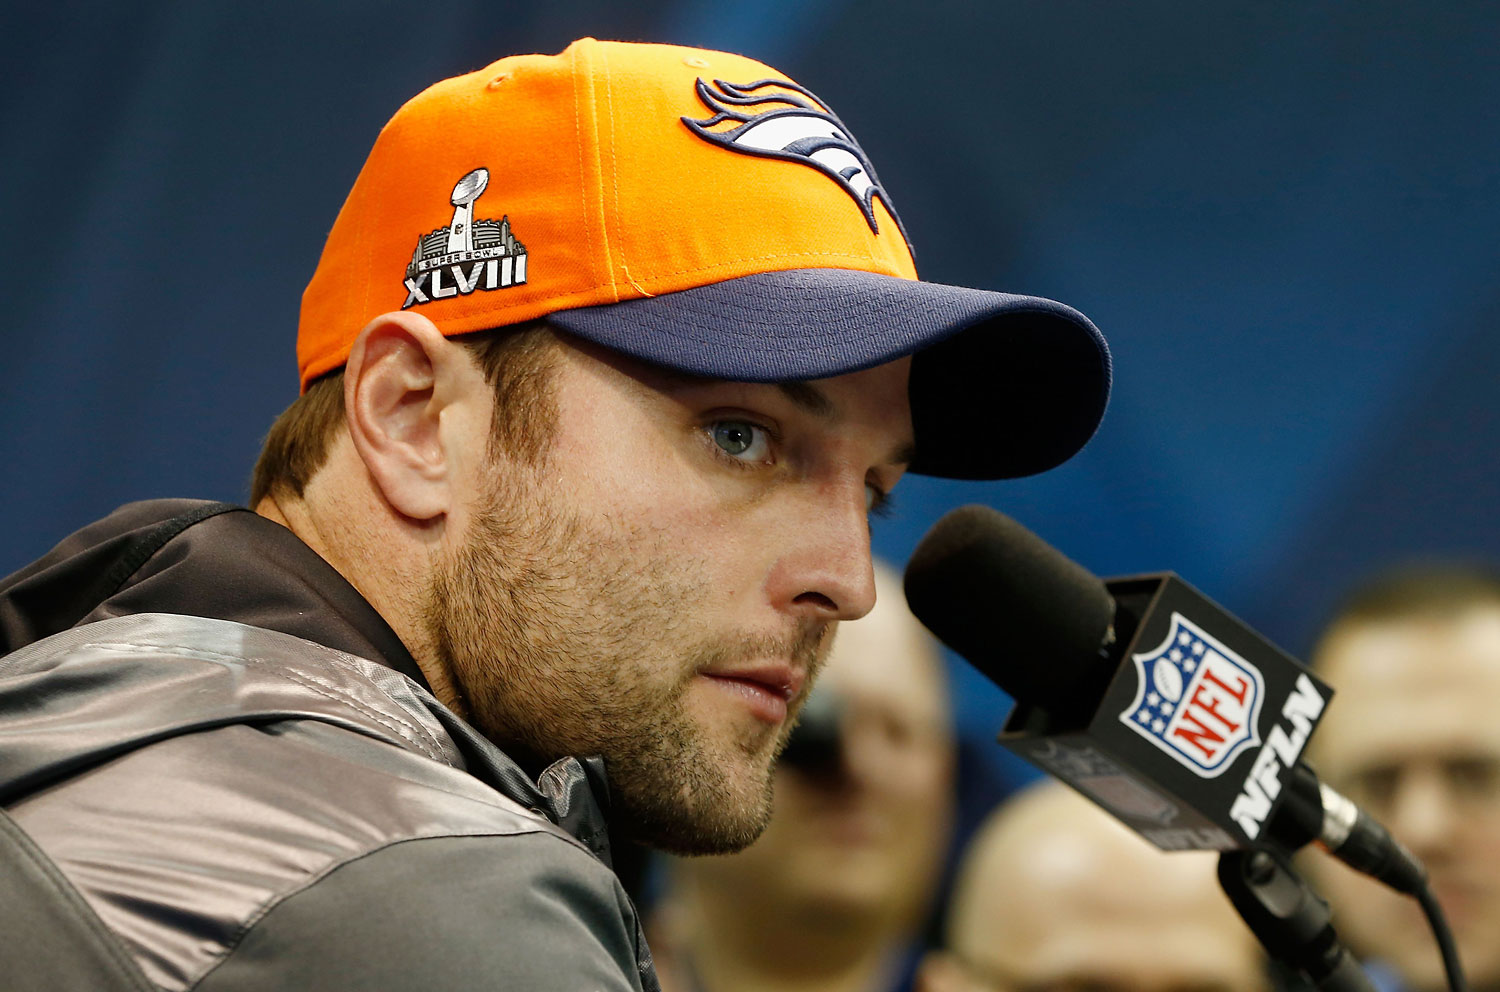 Wide receiver Wes Welker #83 of the Denver Broncos speaks to the media during Super Bowl XLVIII Media Day at the Prudential Center on Jan. 28, 2014 in Newark, New Jersey. Welker has been suspended for use of amphetamines.